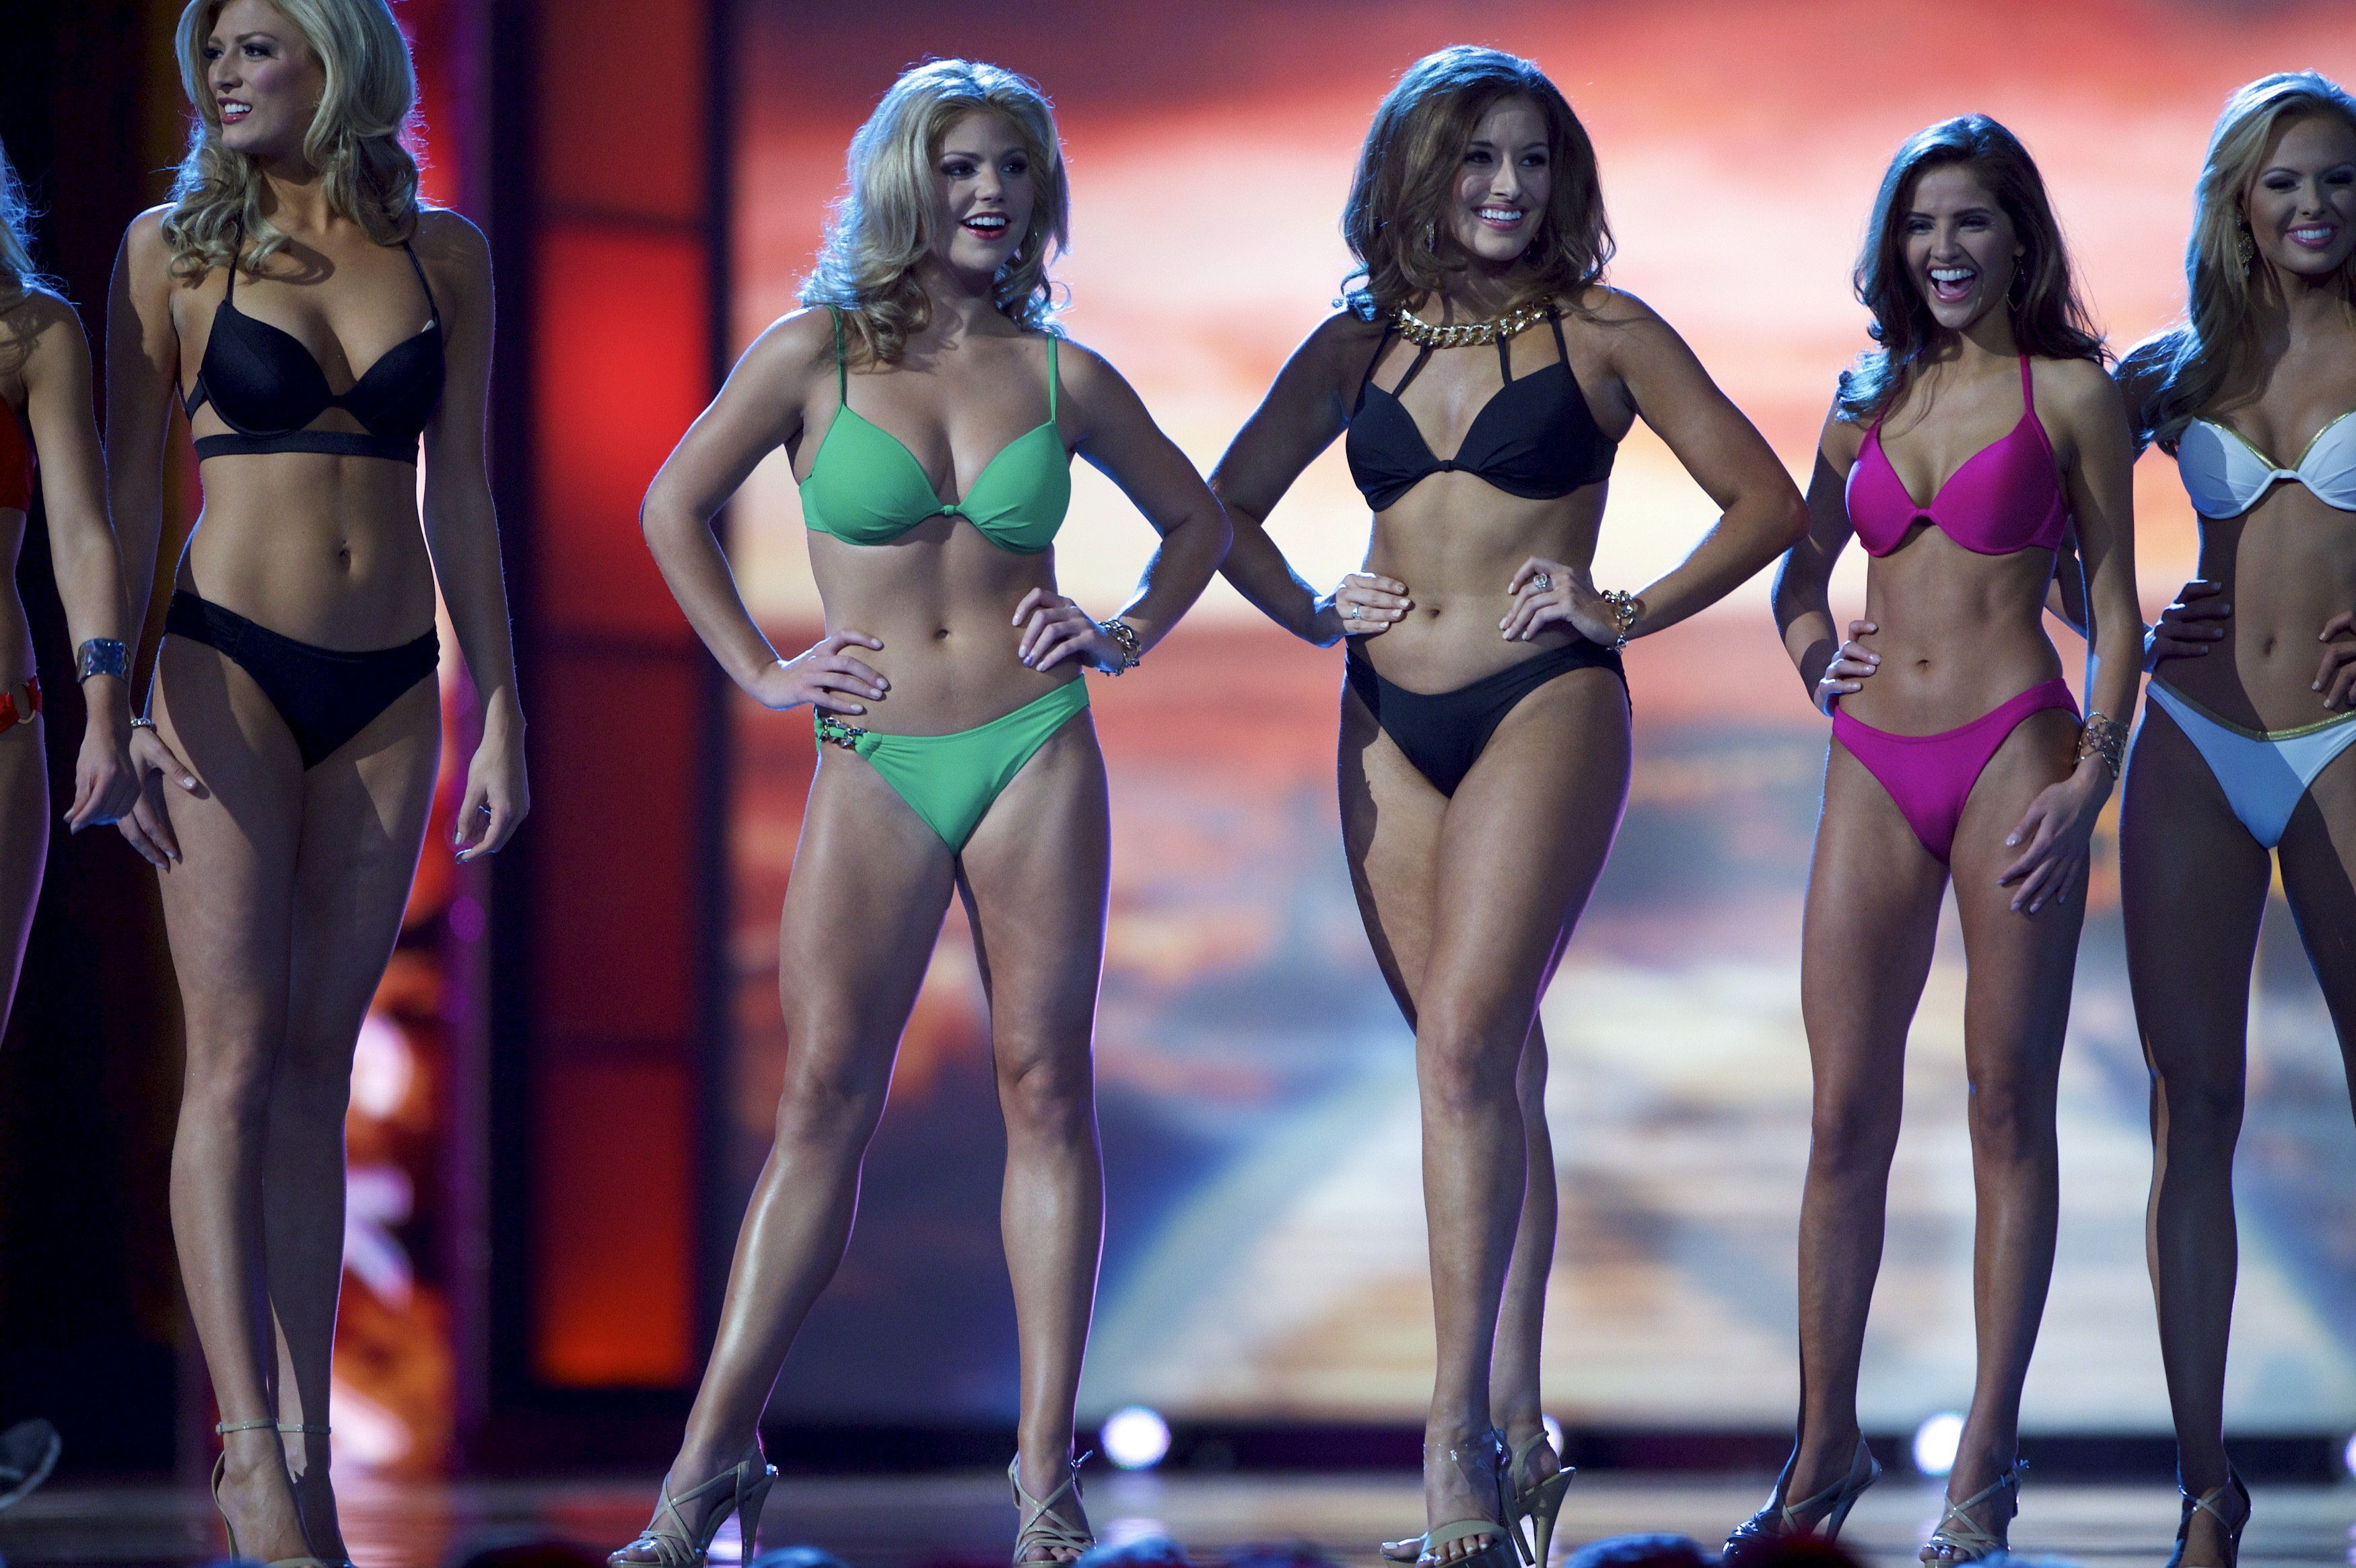 Contestants compete in the swimsuit component of the Miss America Pageant at Boardwalk Hall, in Atlantic City, New Jersey, September 13, 2015.  Miss Georgia Betty Cantrell won.  REUTERS/Mark Makela